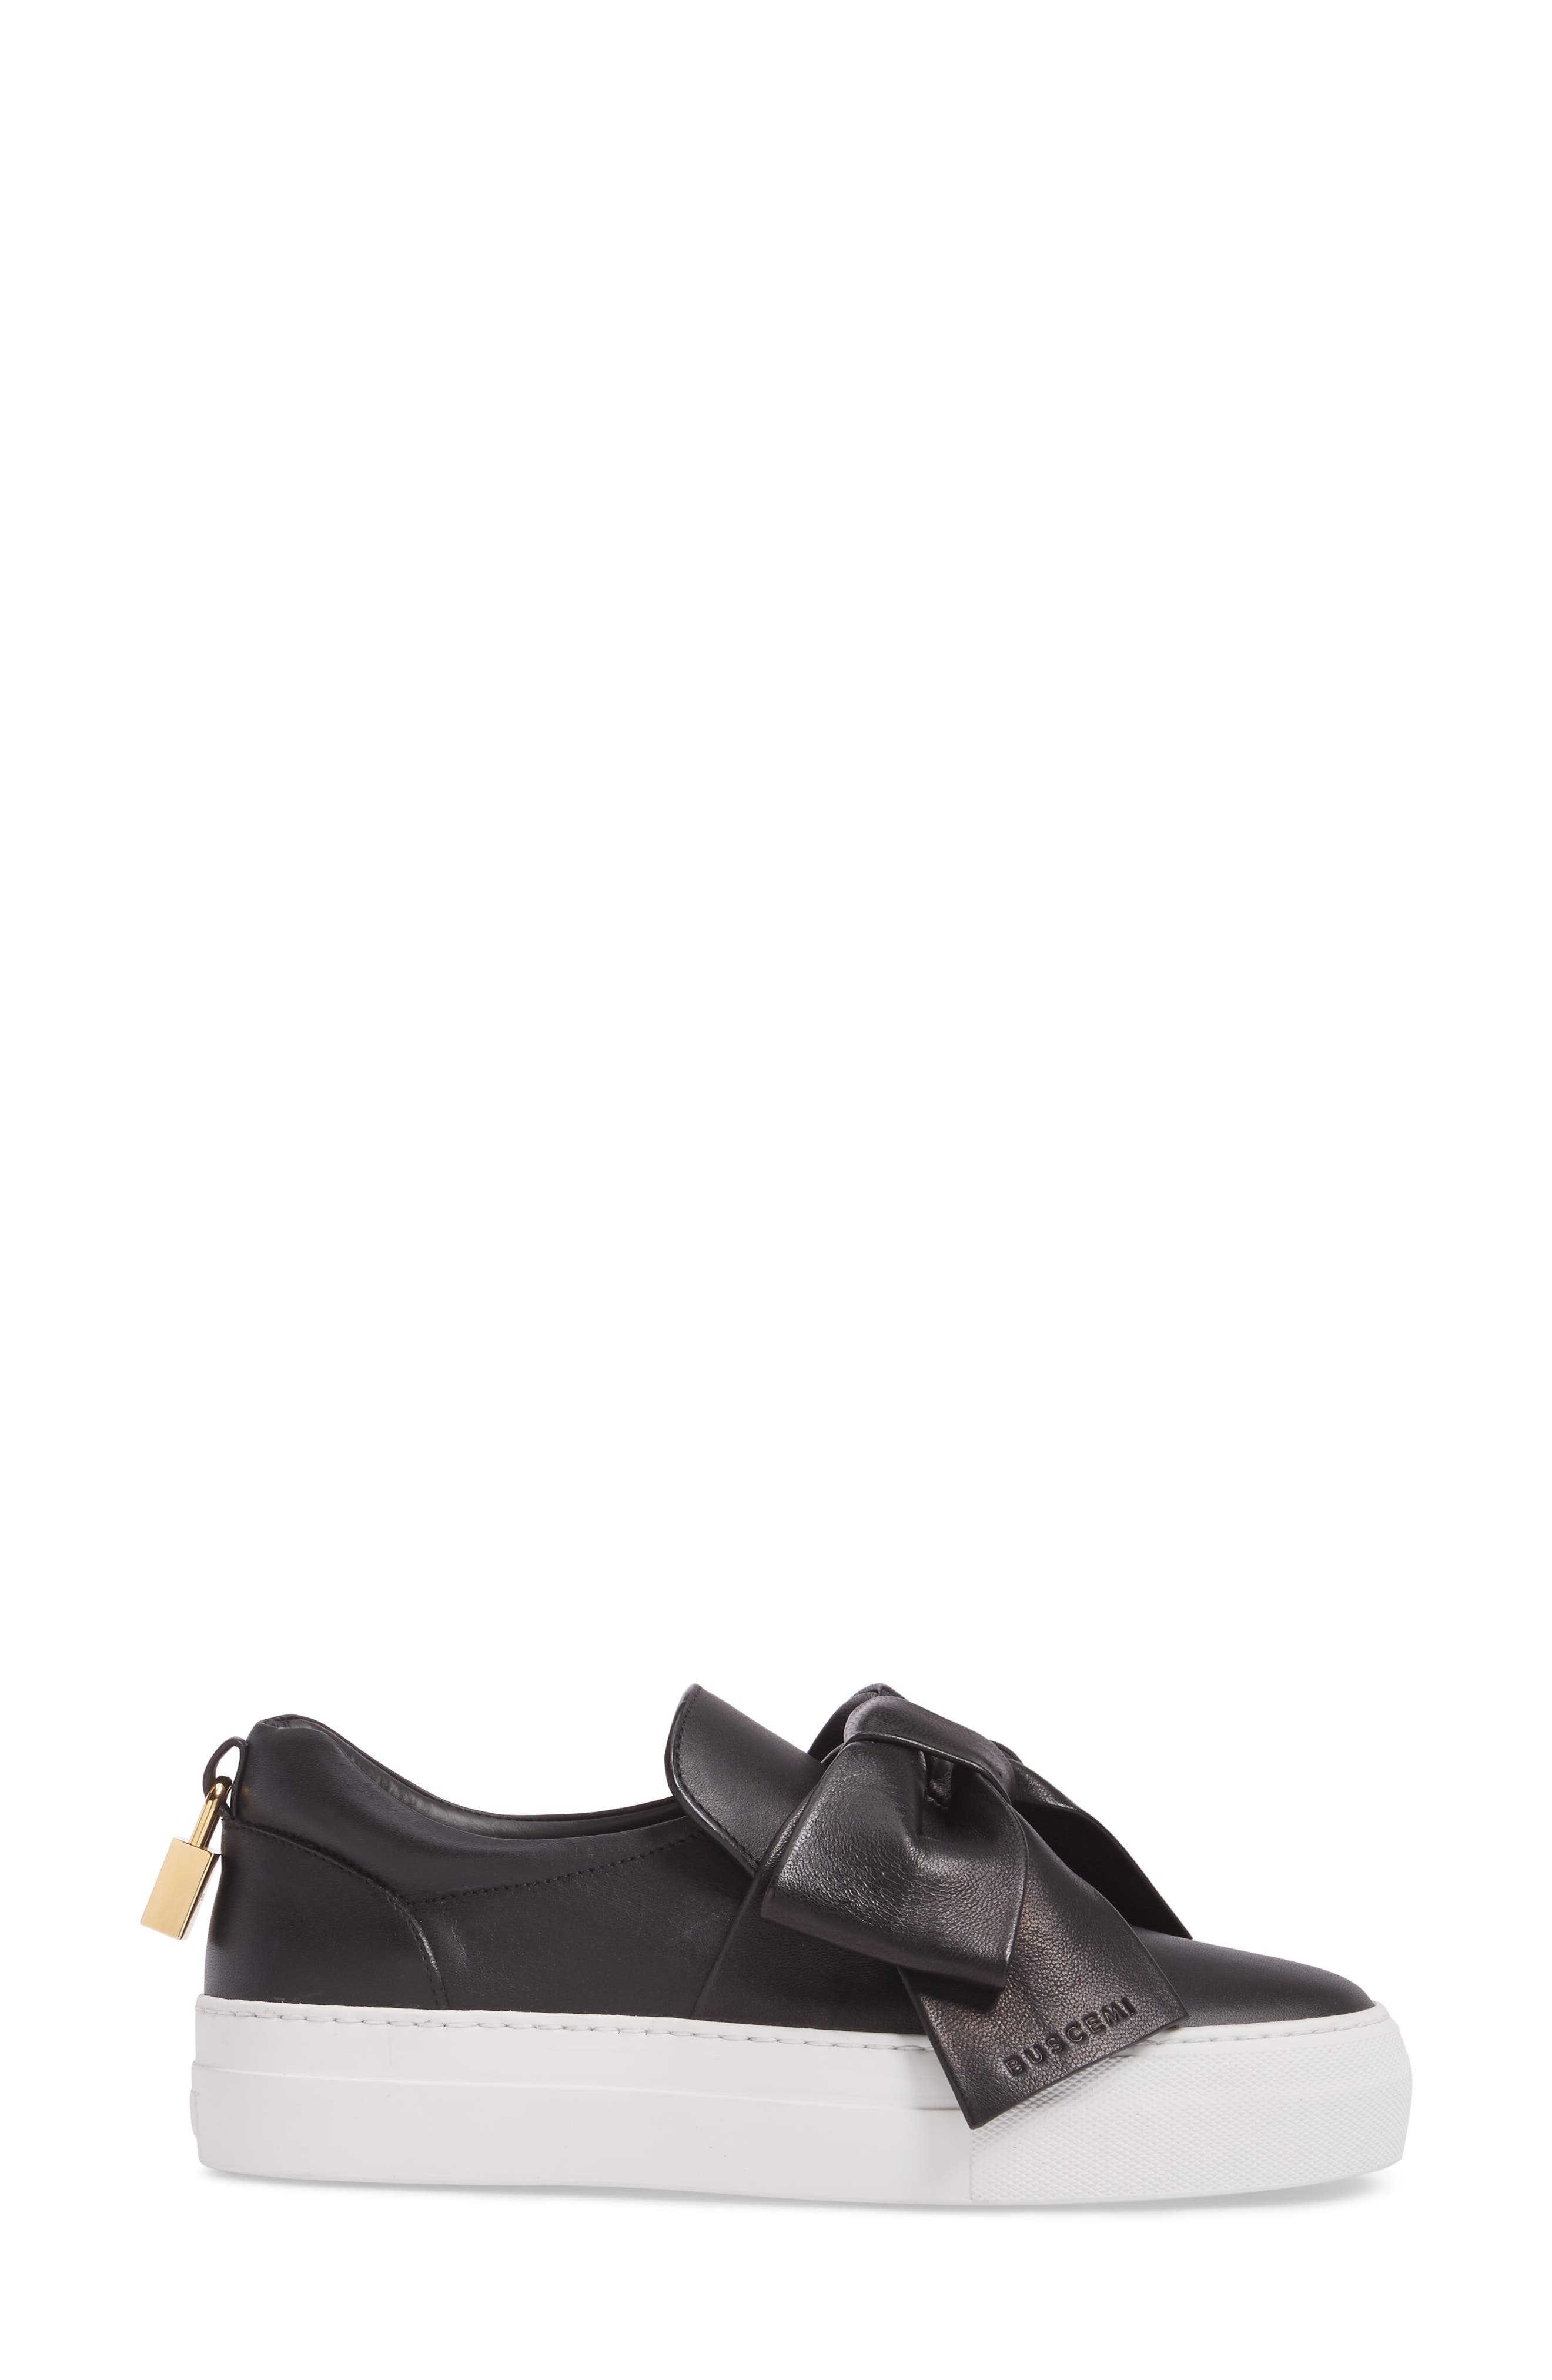 Alternate Image 3  - Buscemi Bow Slip-On Sneaker (Women)